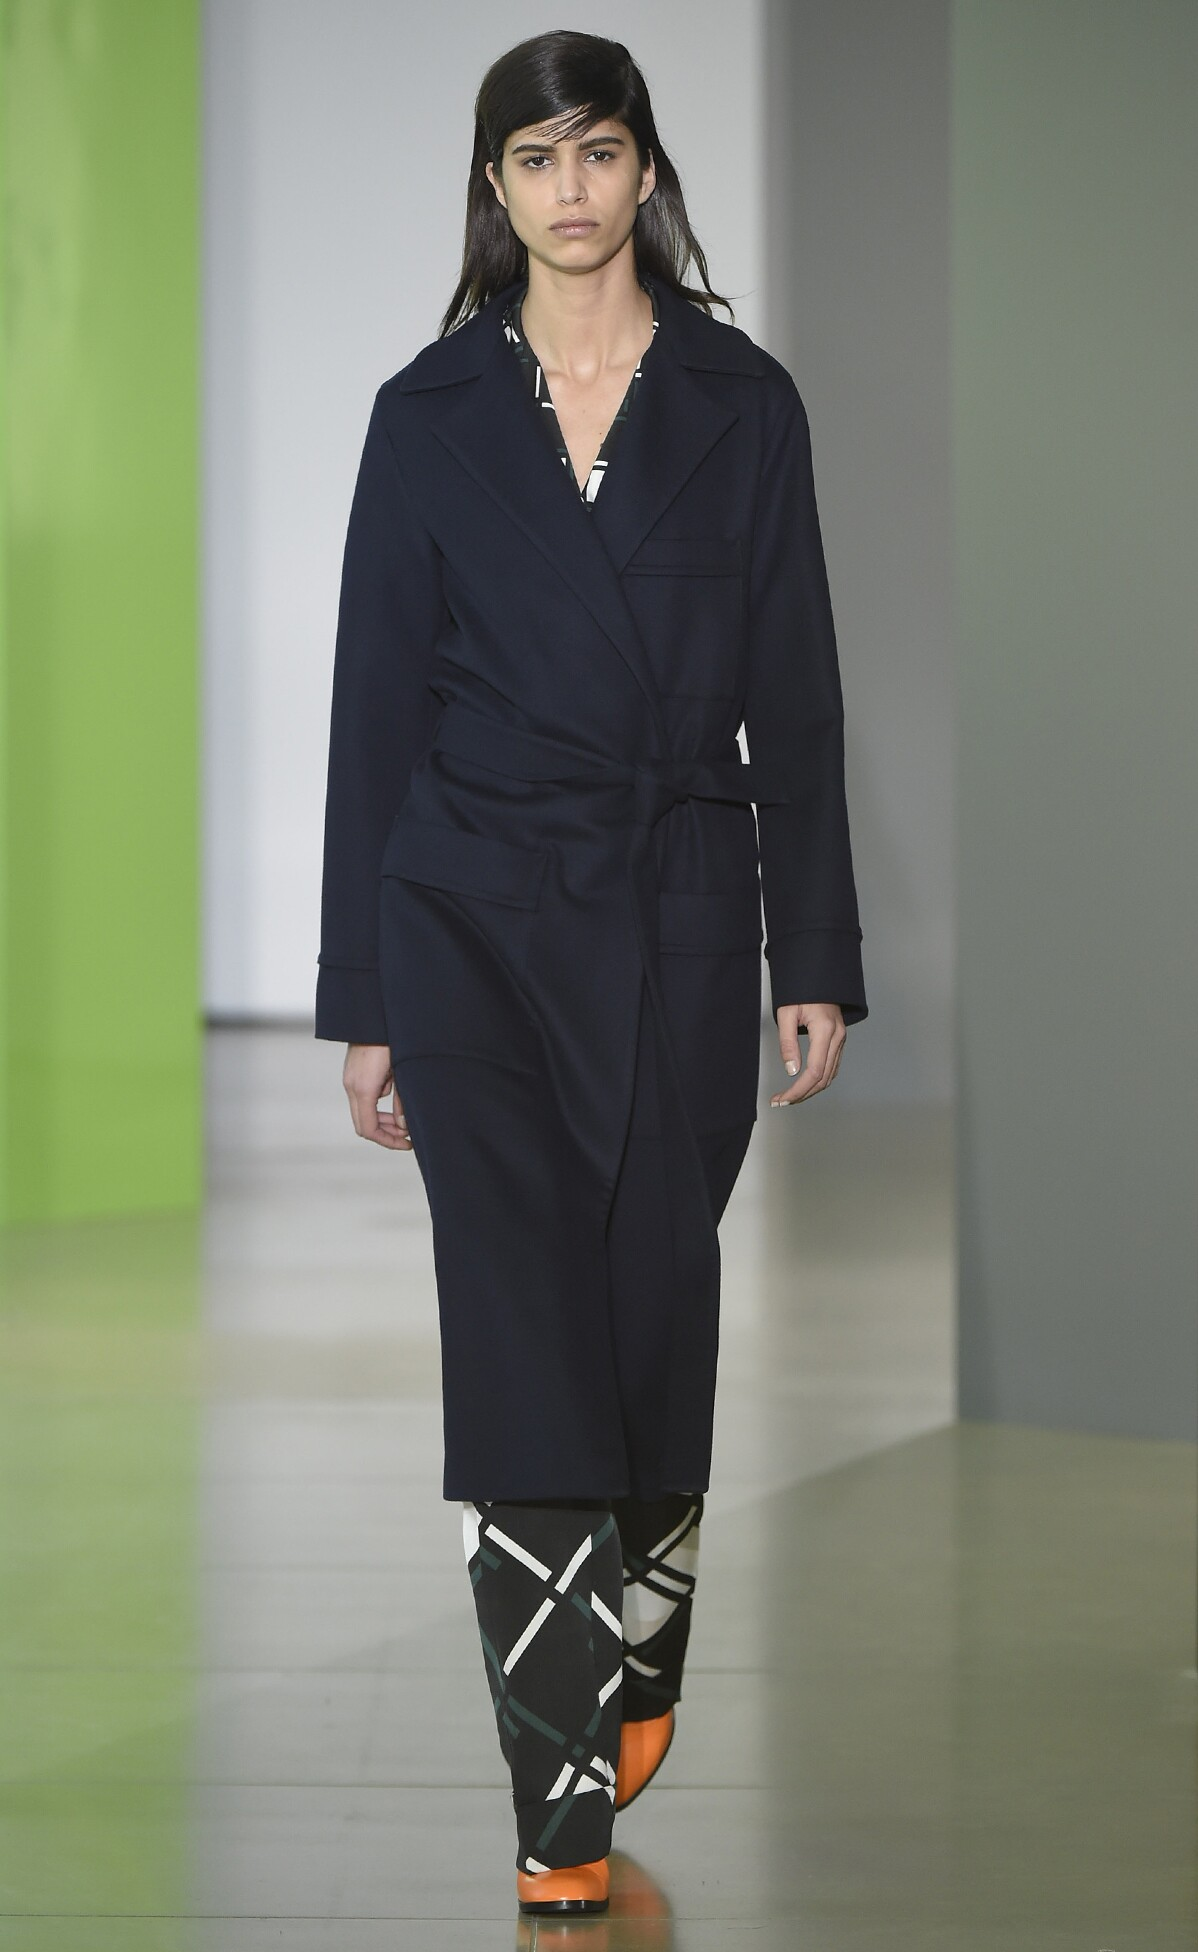 Winter Fashion Trends 2015 2016 Jil Sander Collection